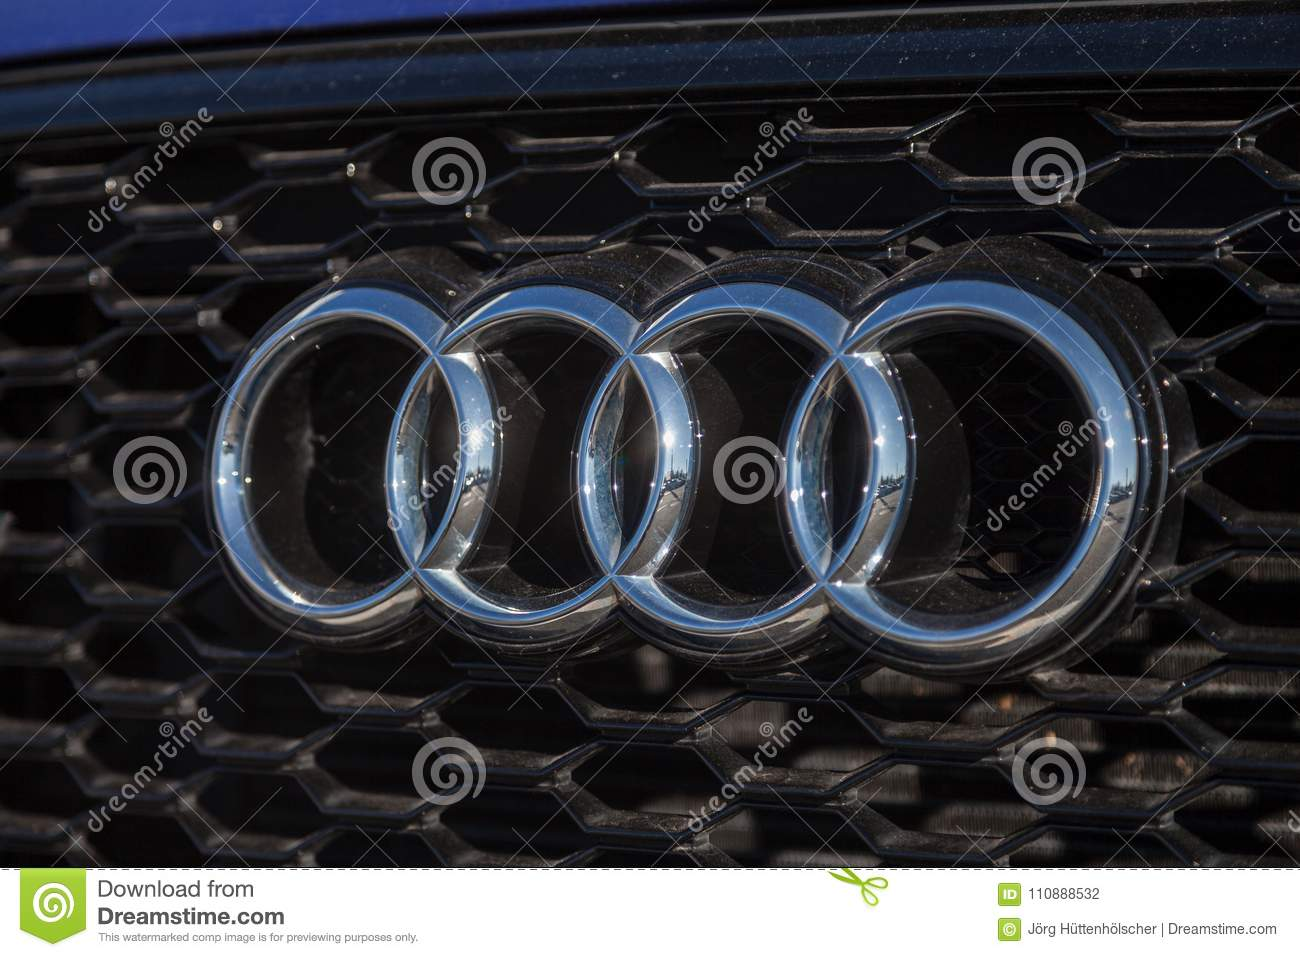 Audi Emblem On An Audi Car Editorial Photography Image Of Button - Audi car emblem